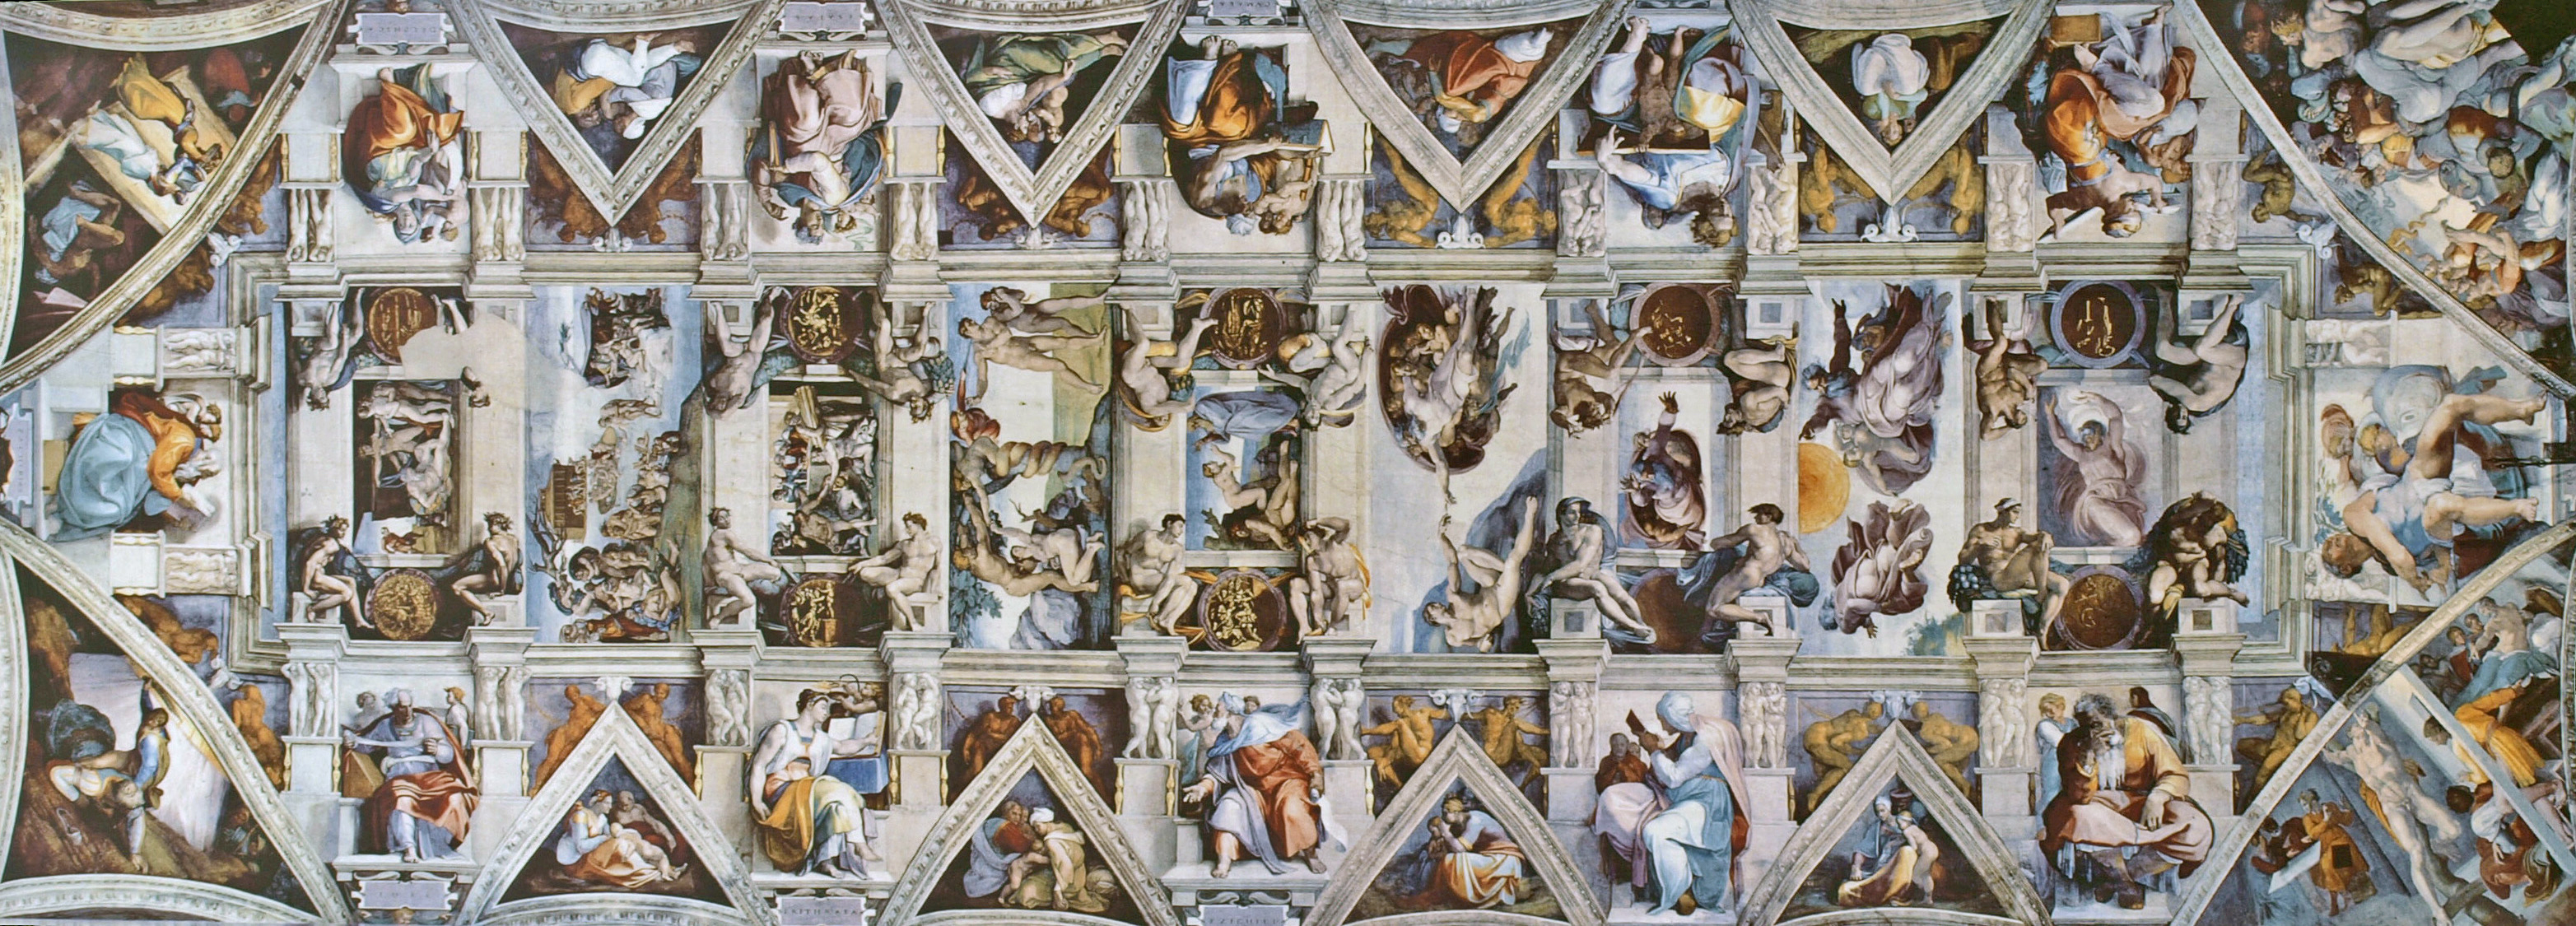 http://upload.wikimedia.org/wikipedia/commons/0/07/CAPPELLA_SISTINA_Ceiling.jpg